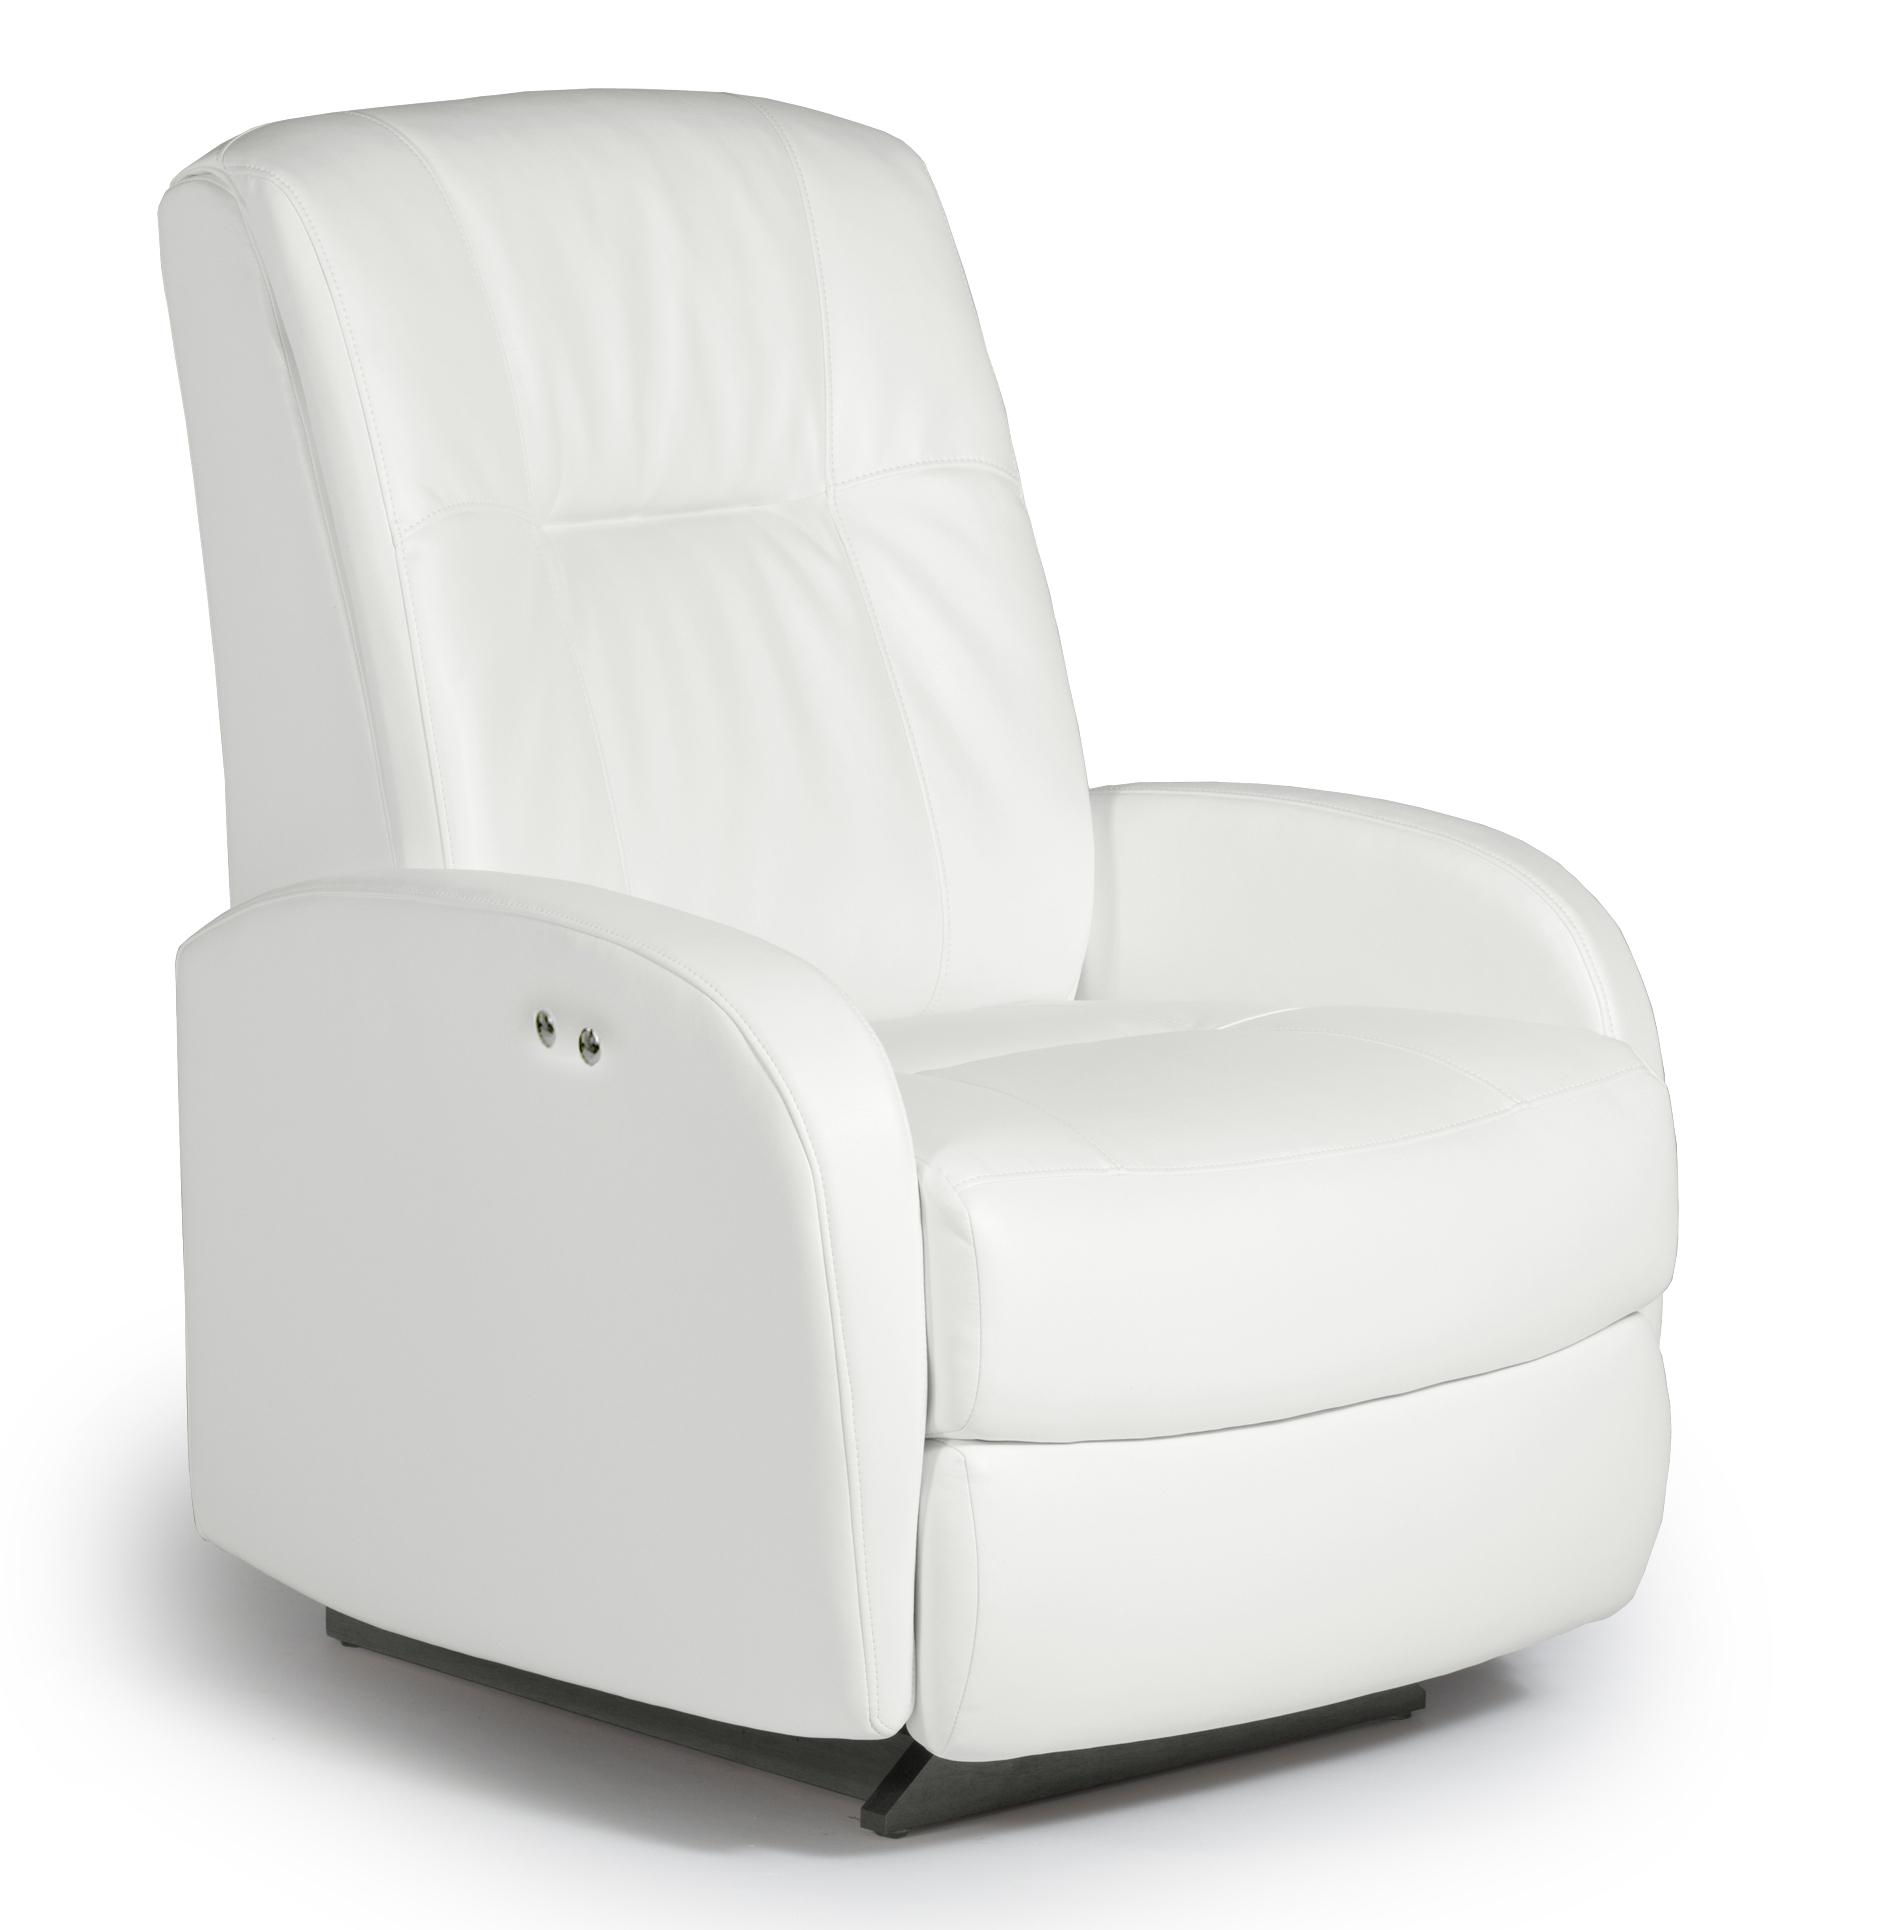 Best Home Furnishings Recliners - Medium Ruddick Space Saver Recliner - Item Number: 2A44